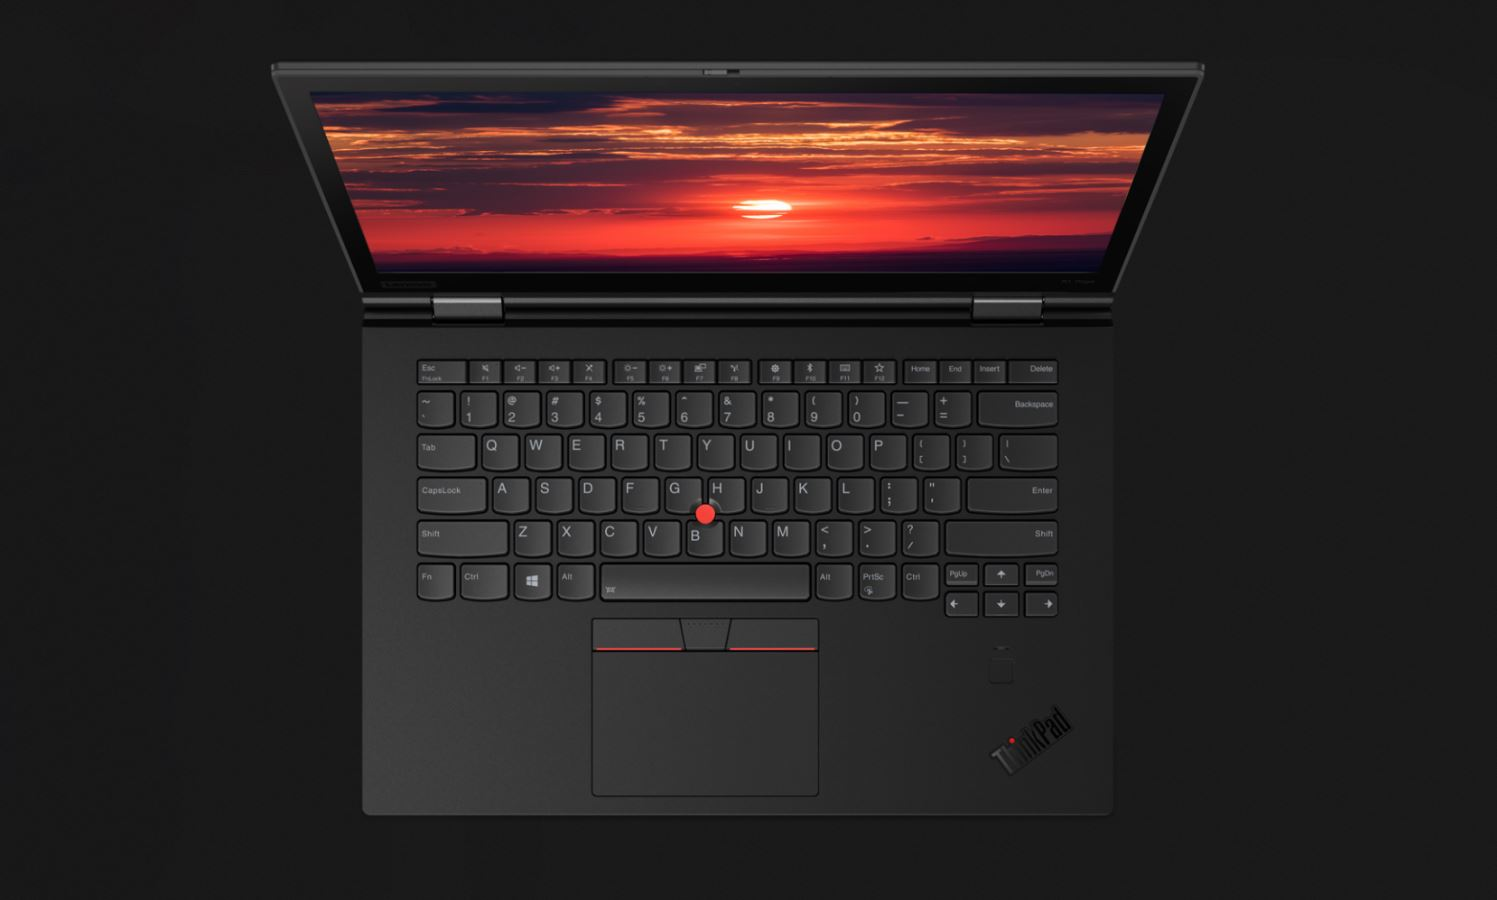 Lenovo reveals next gen ThinkPad X1 Yoga with Wake on Voice new Pen Pro support and more